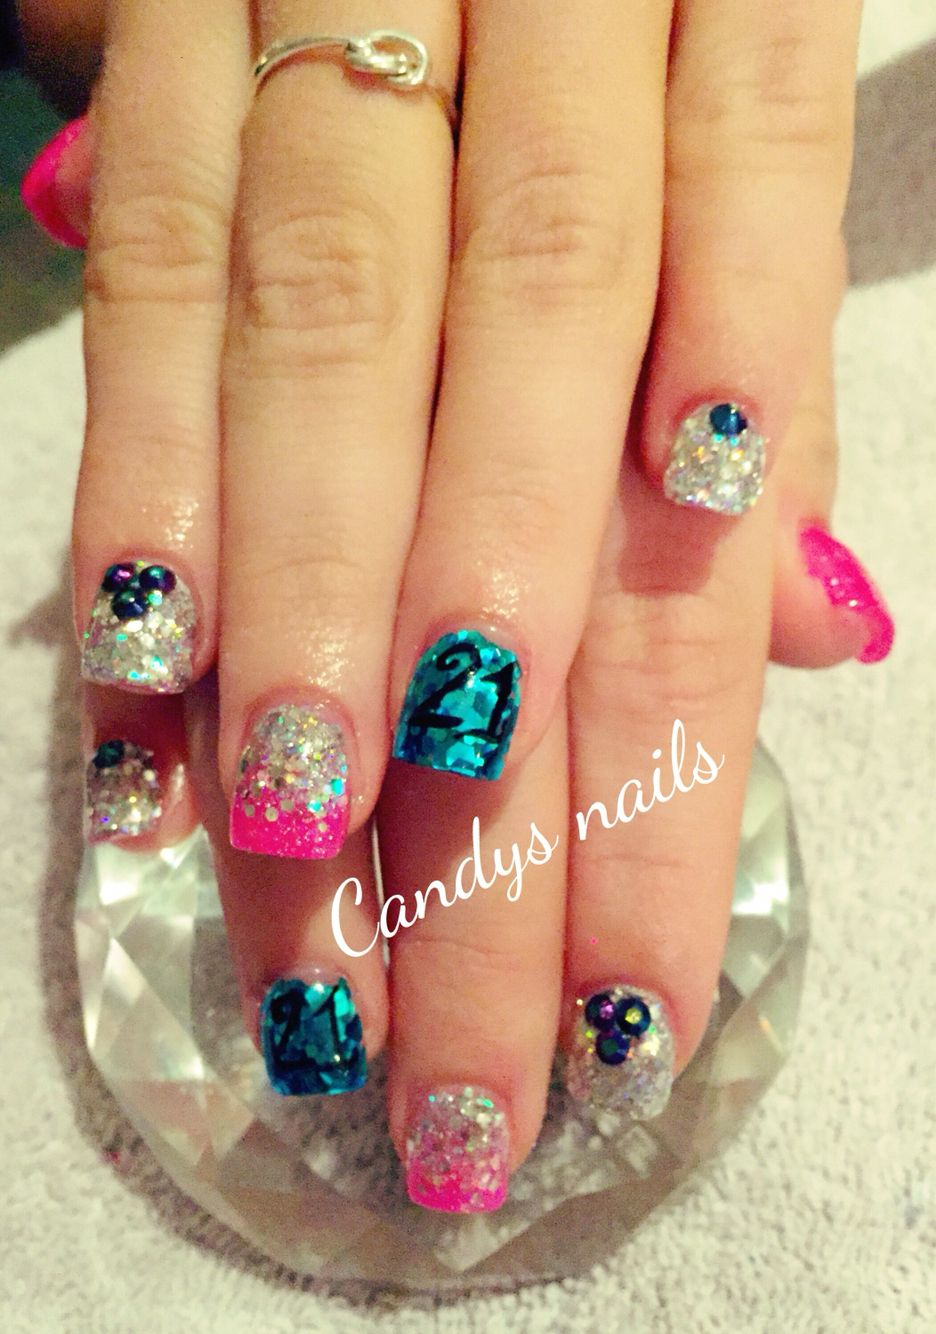 Blue and pink 21st birthday acrylic nails!   Candys Nails ...